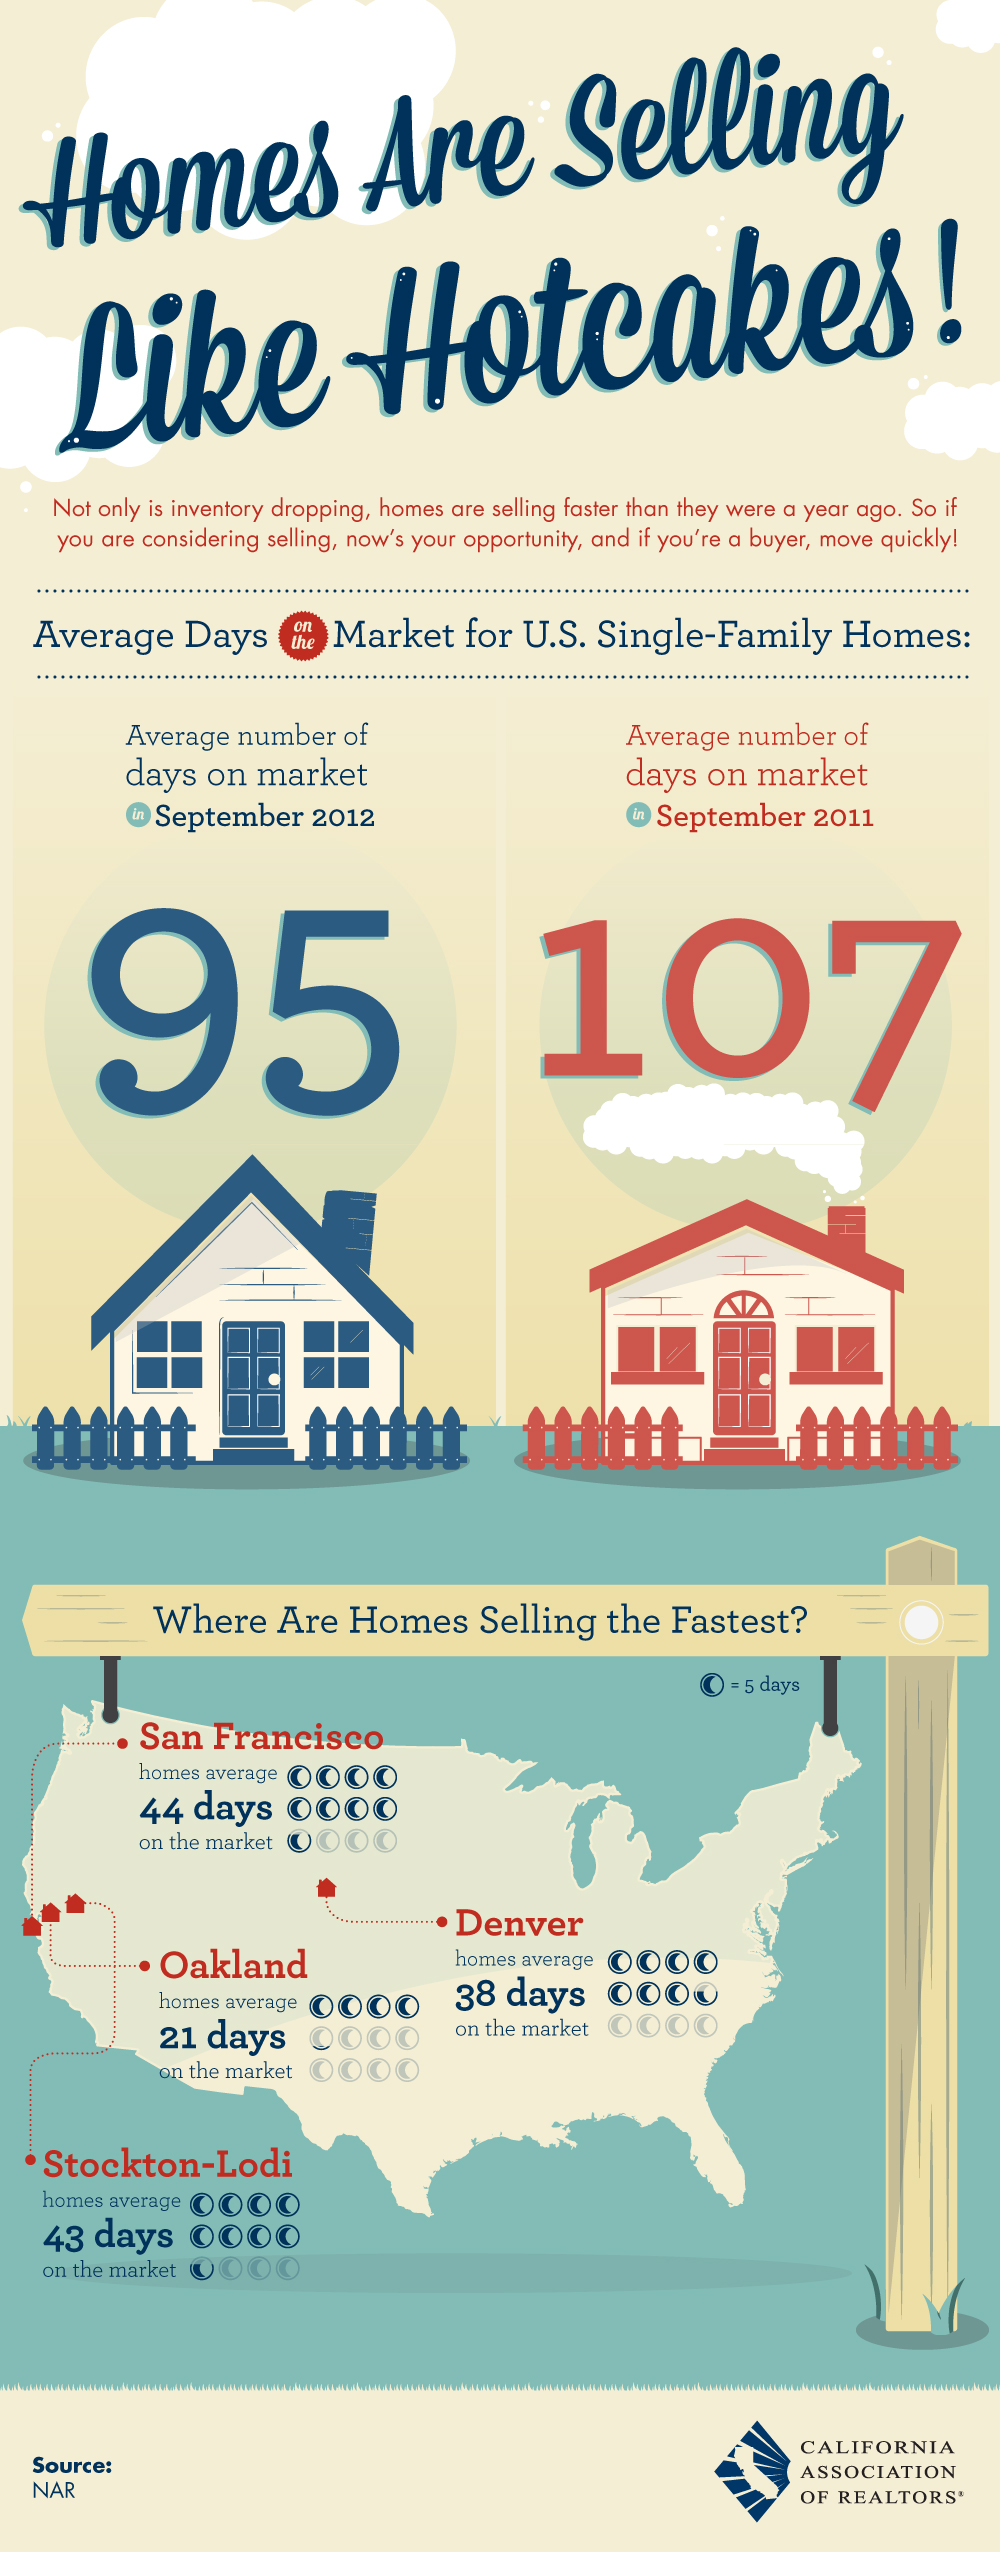 Homes are selling